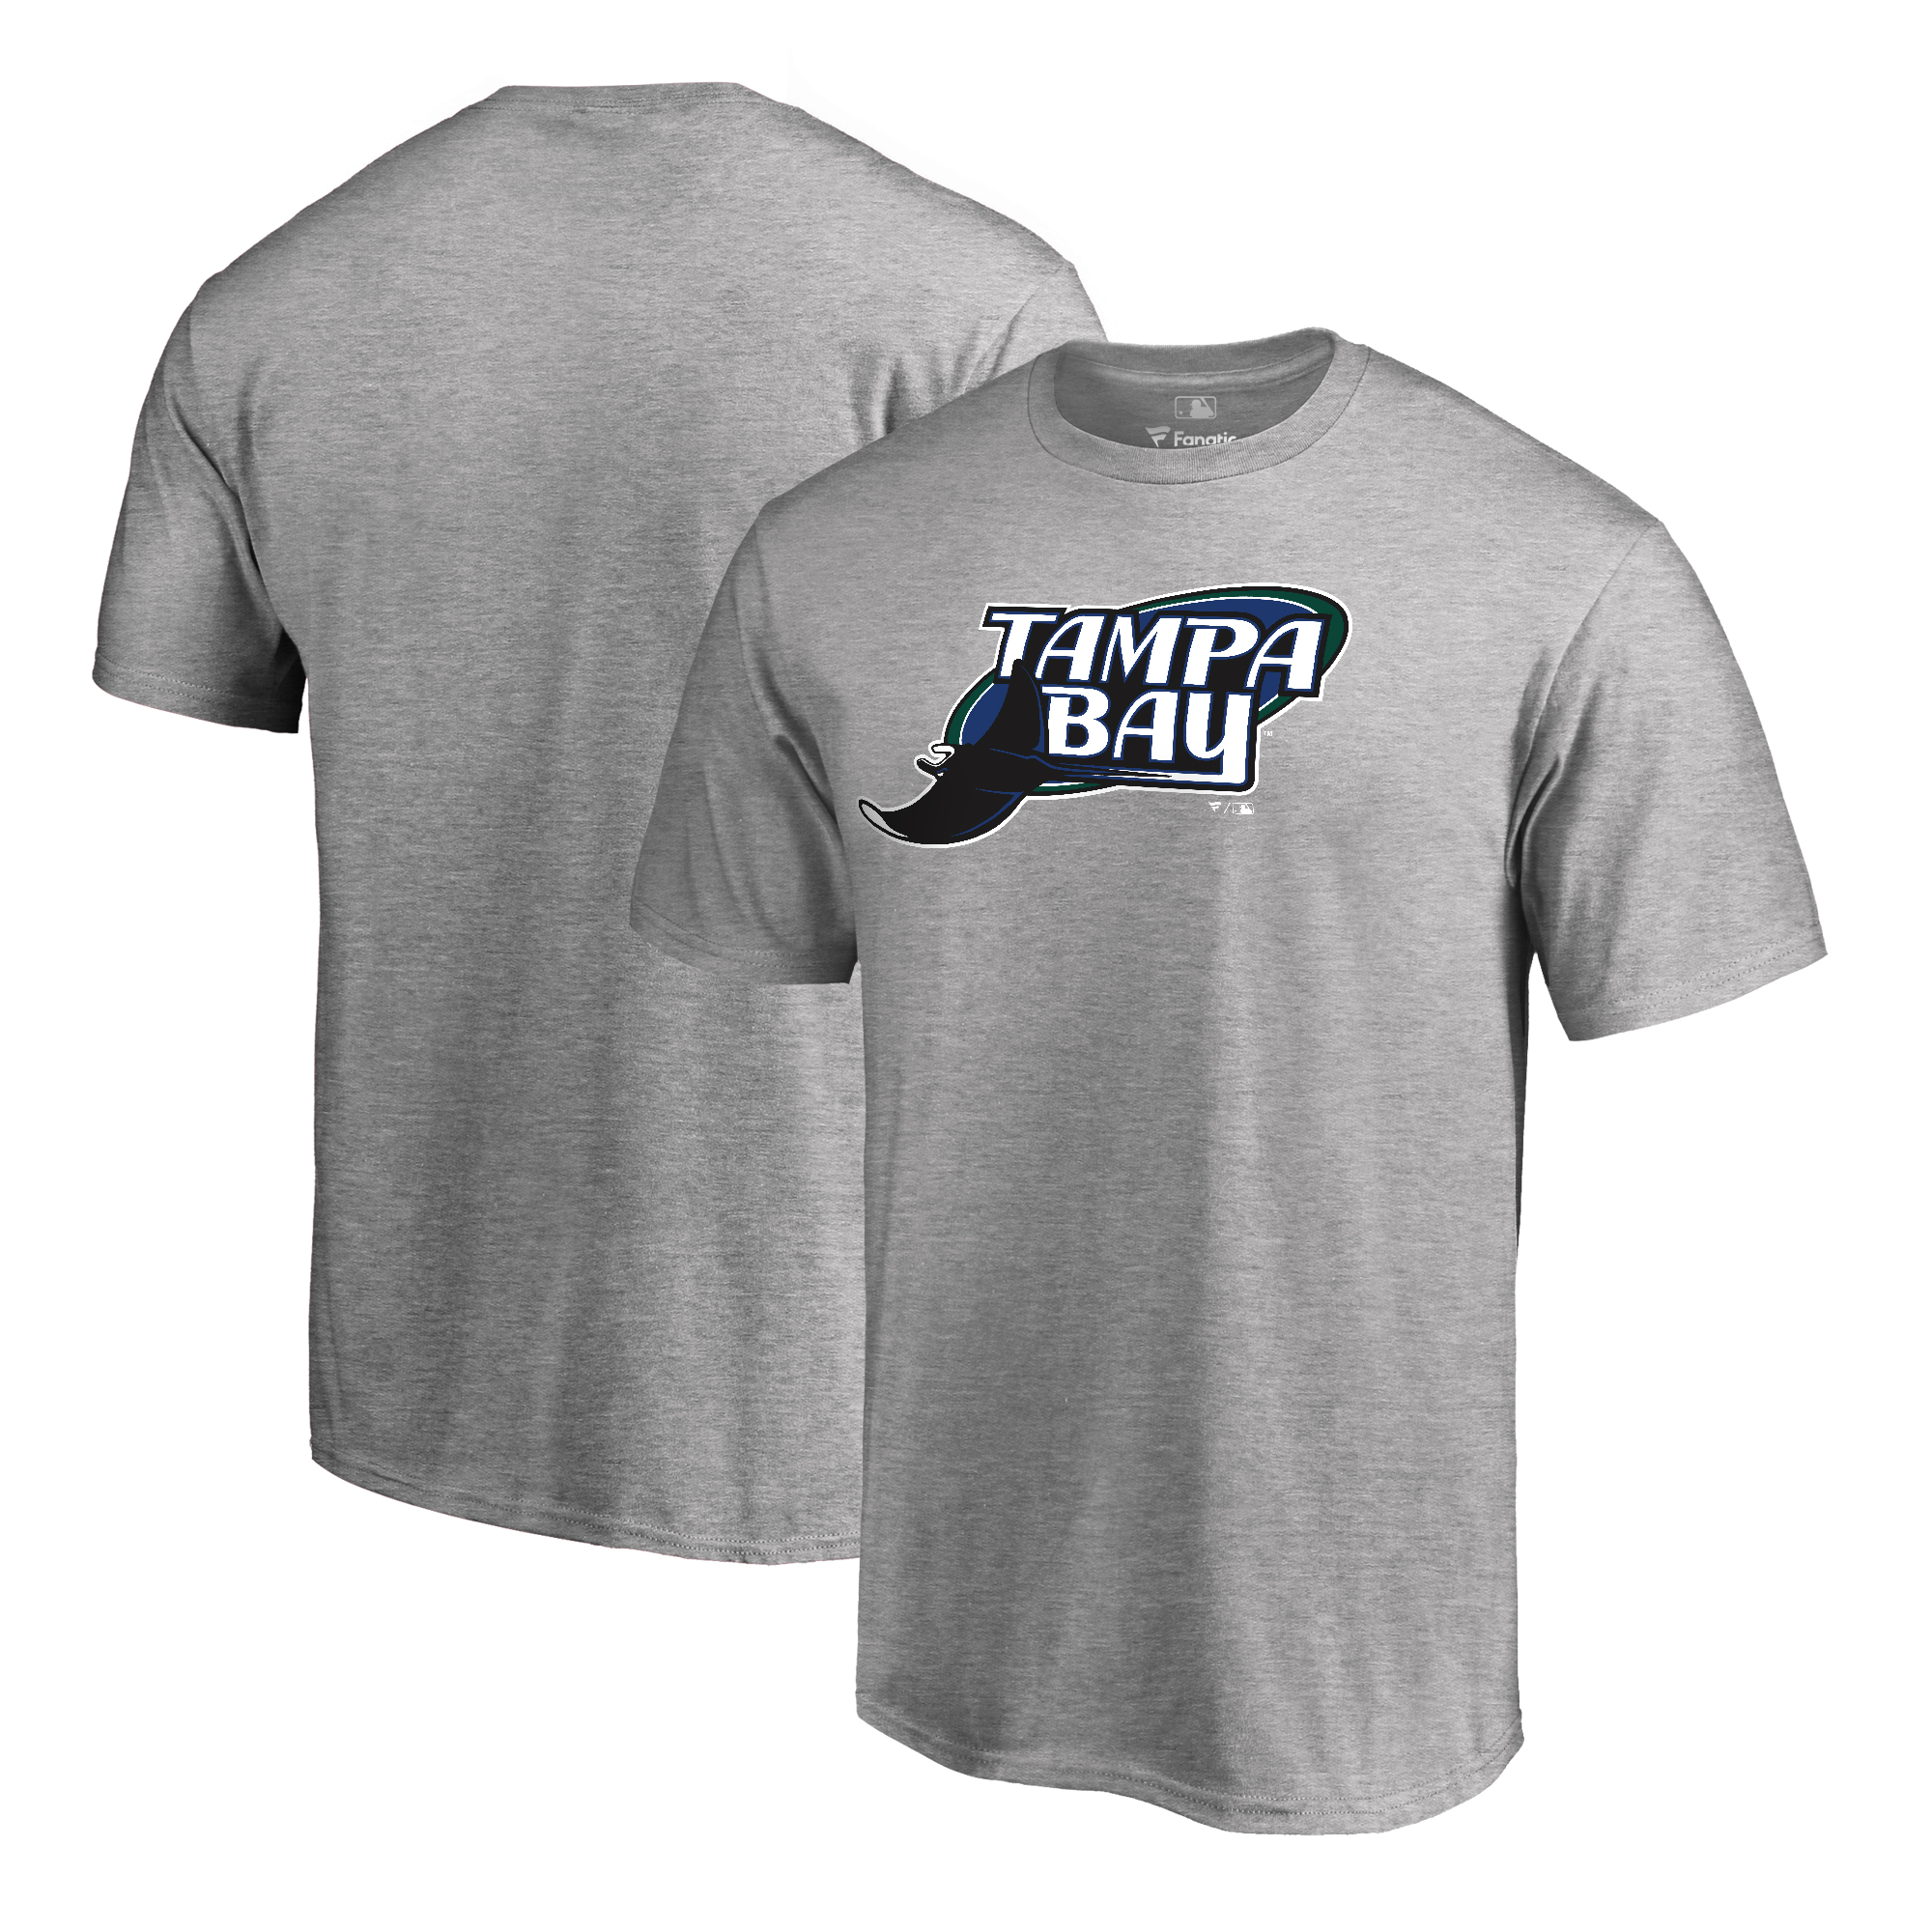 Tampa Bay Rays Fanatics Branded Big & Tall Cooperstown Collection Huntington T-Shirt - Ash